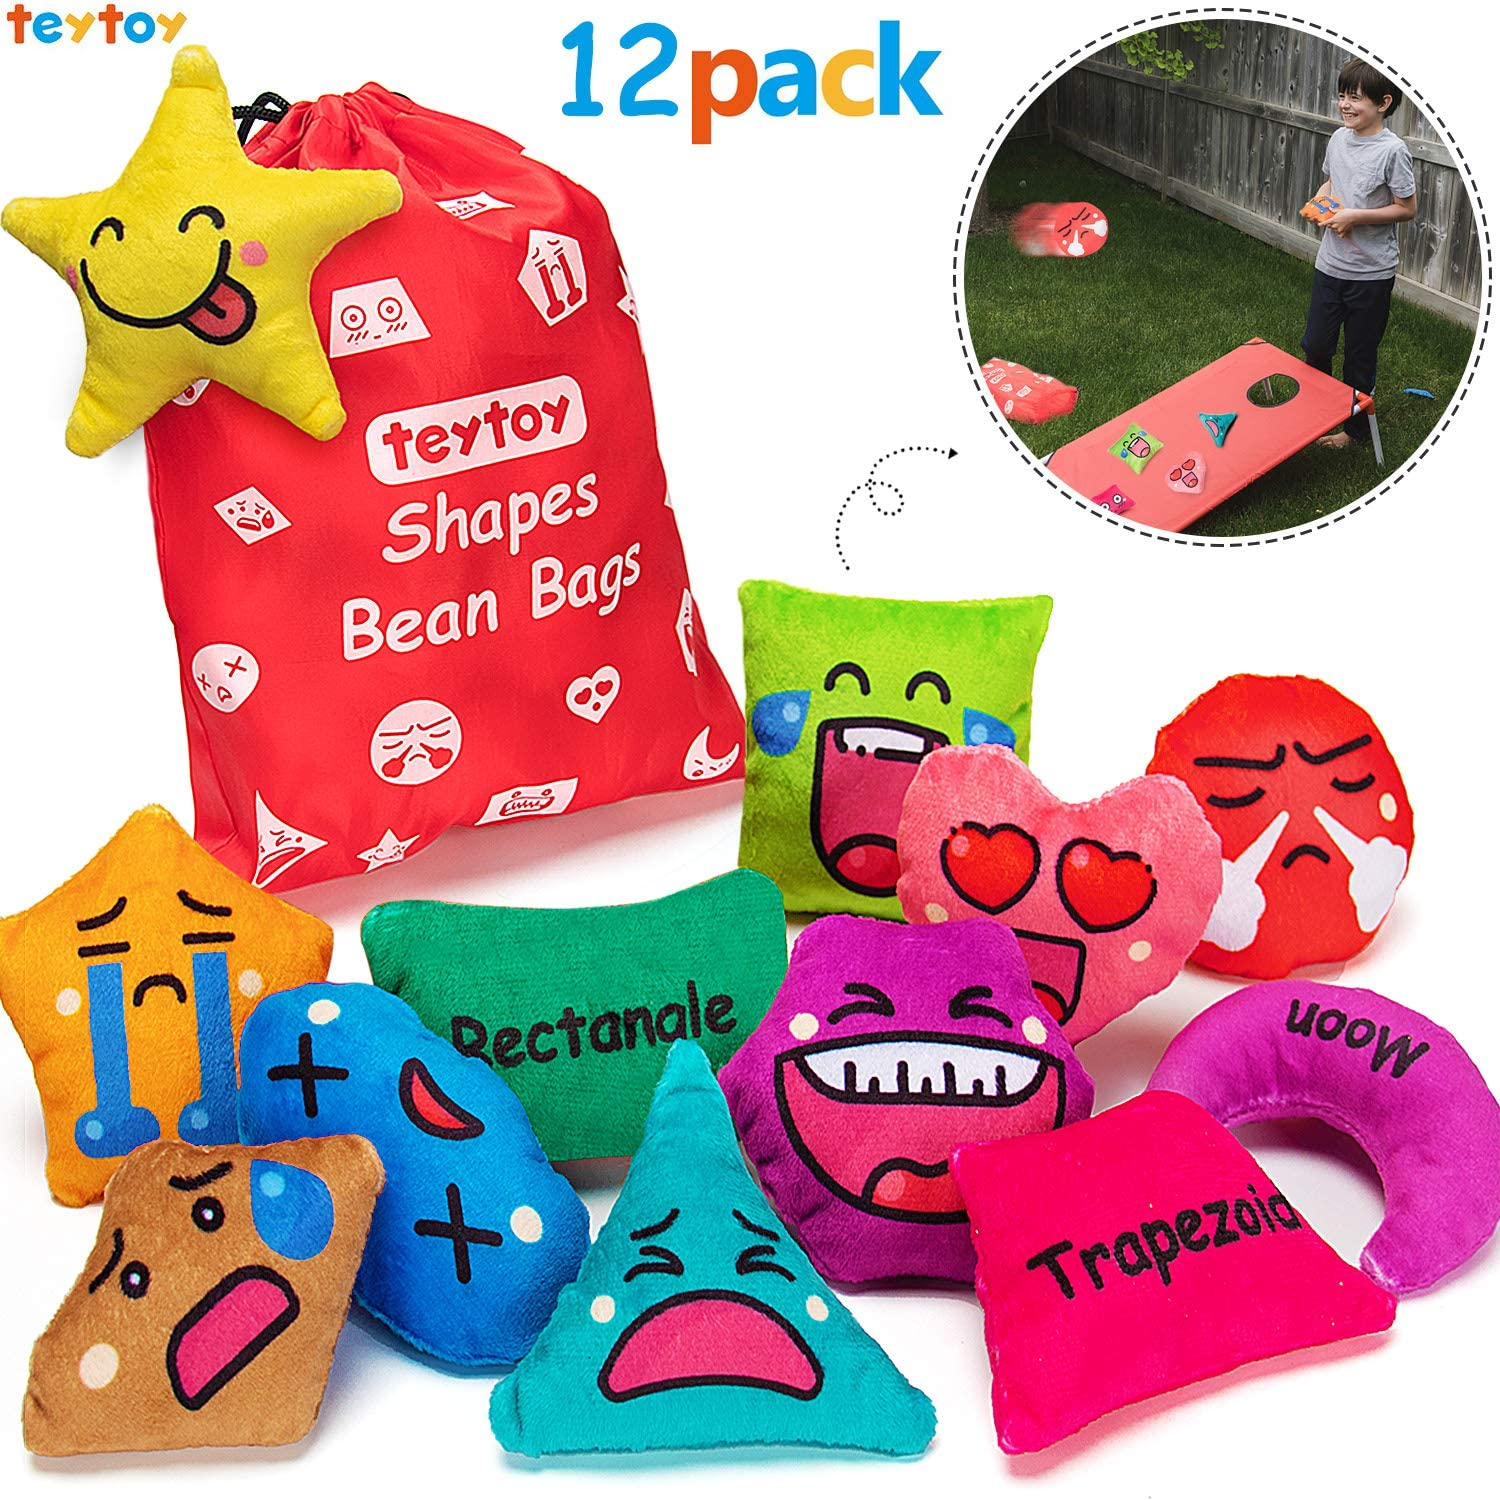 teytoy Shapes Beanbags Toy Learn Shapes and Expressions Squeaky and Rattle Preschool Educational and Learning Activities Geometric Sensory Toys for Kids Toddlers Toss Game (12 Pack)